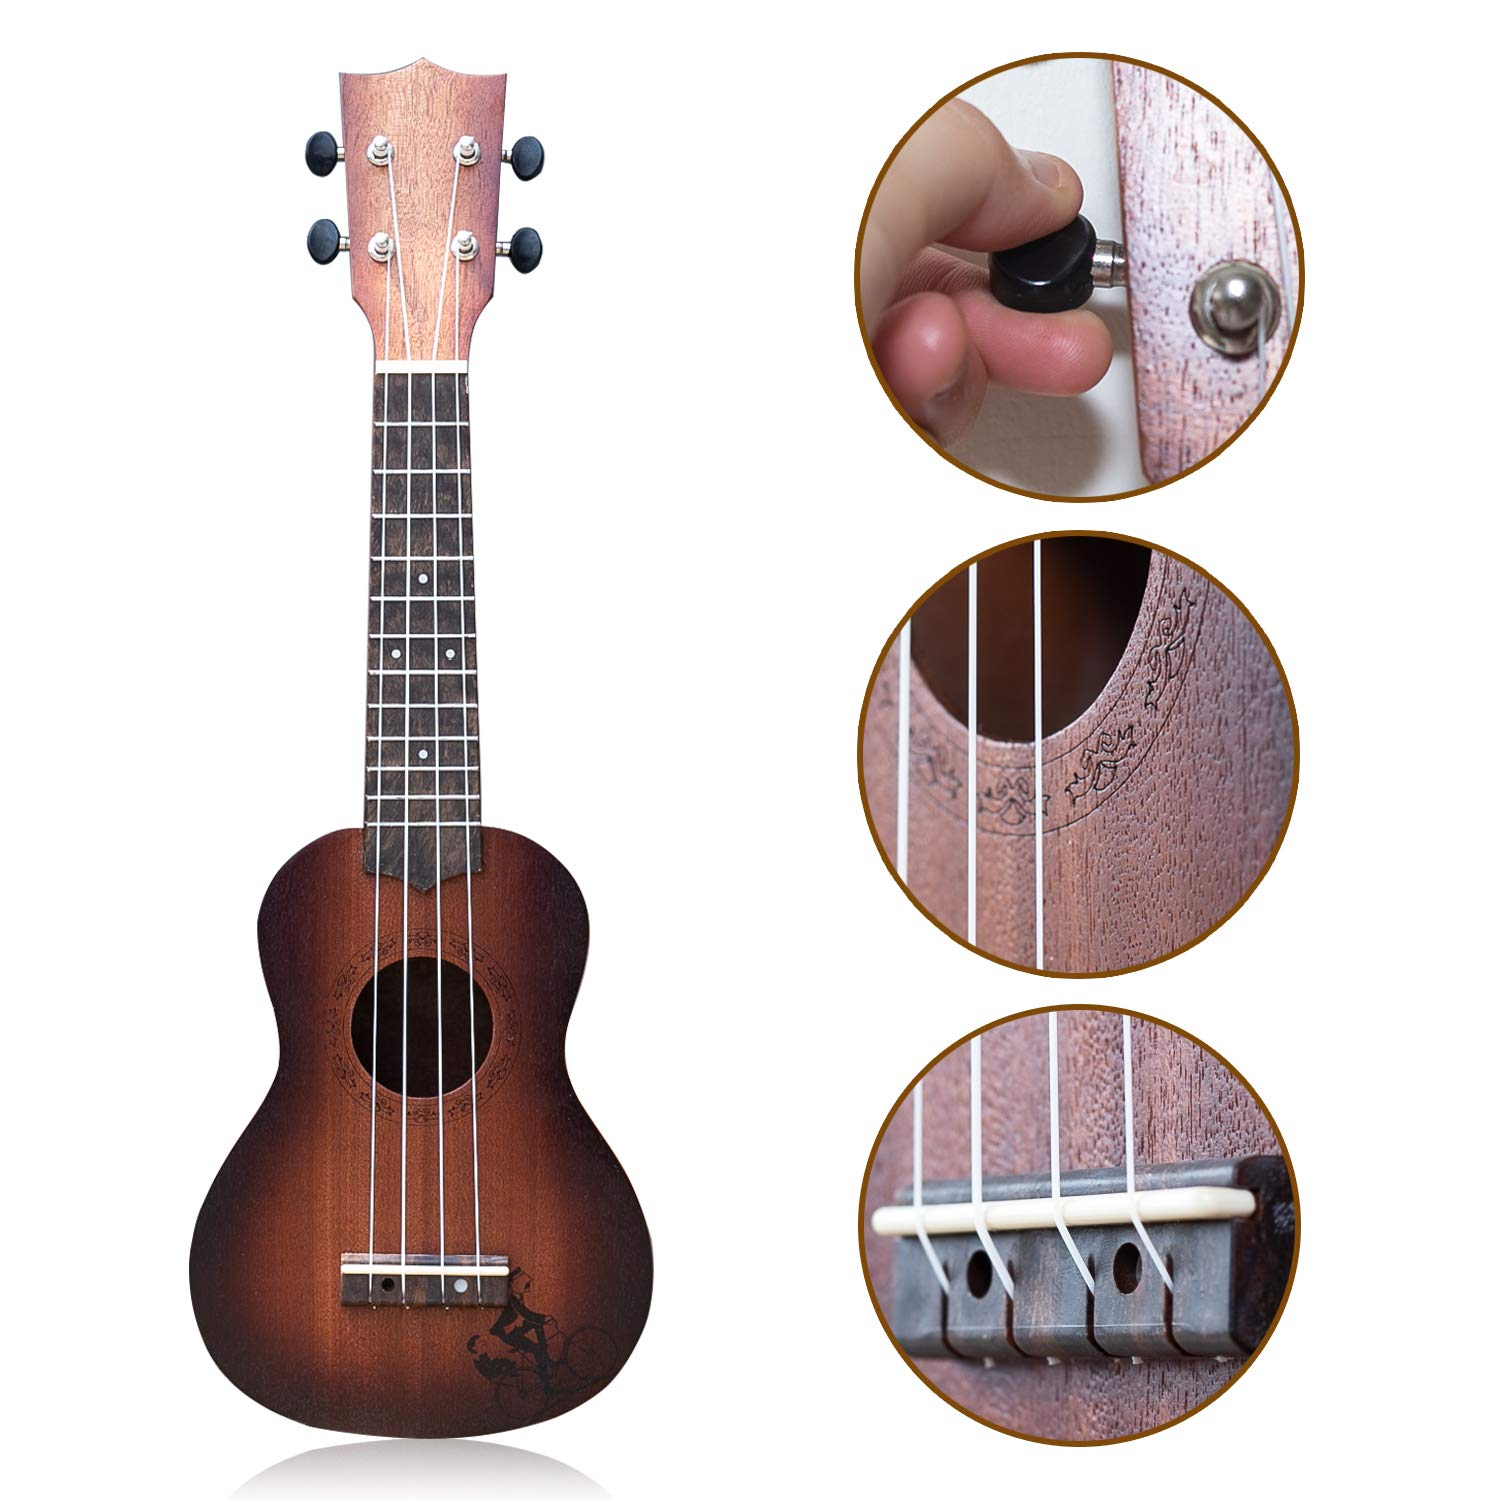 21 Inch Wooden Ukulele Guitar Soprano Kids Toy 4 Strings Musical Instruments Educational Learning with Picks Primary Tutorial Backpack for Toddler Beginner Keep Tone Anti-Impact YOLOPLUS